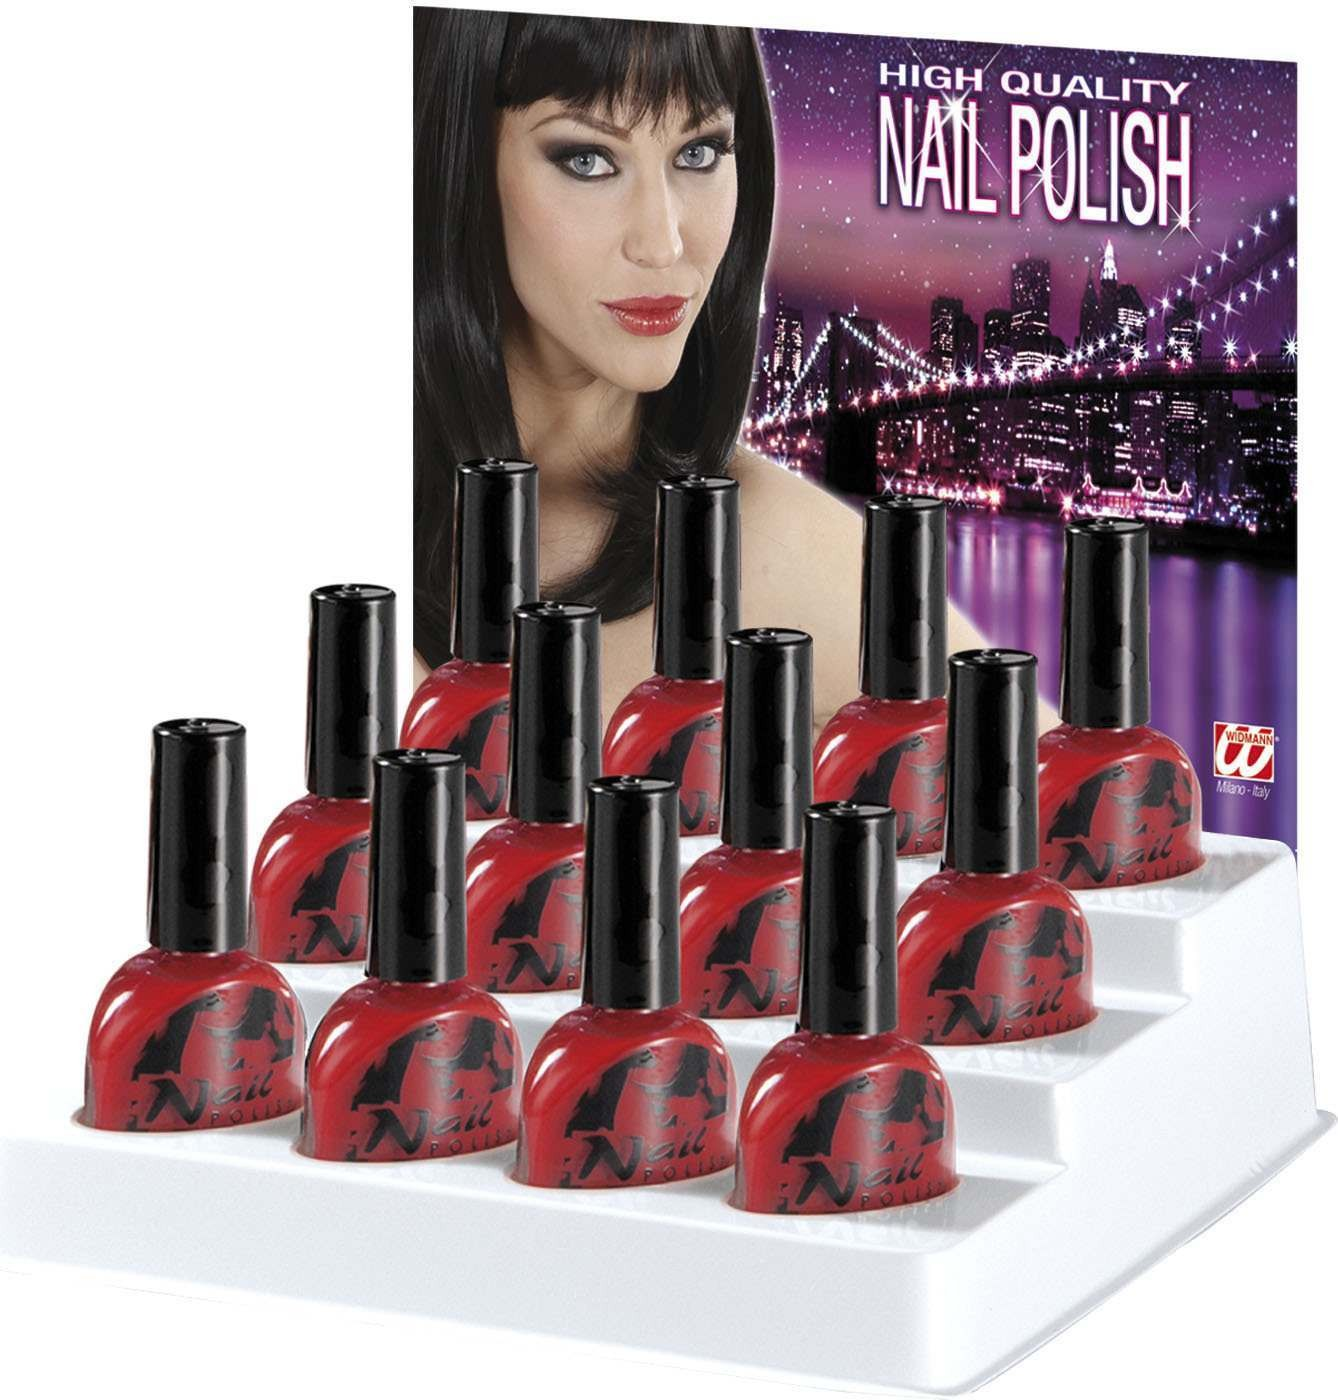 Ladies Nail Polish 7Ml - Red Makeup - (Red)